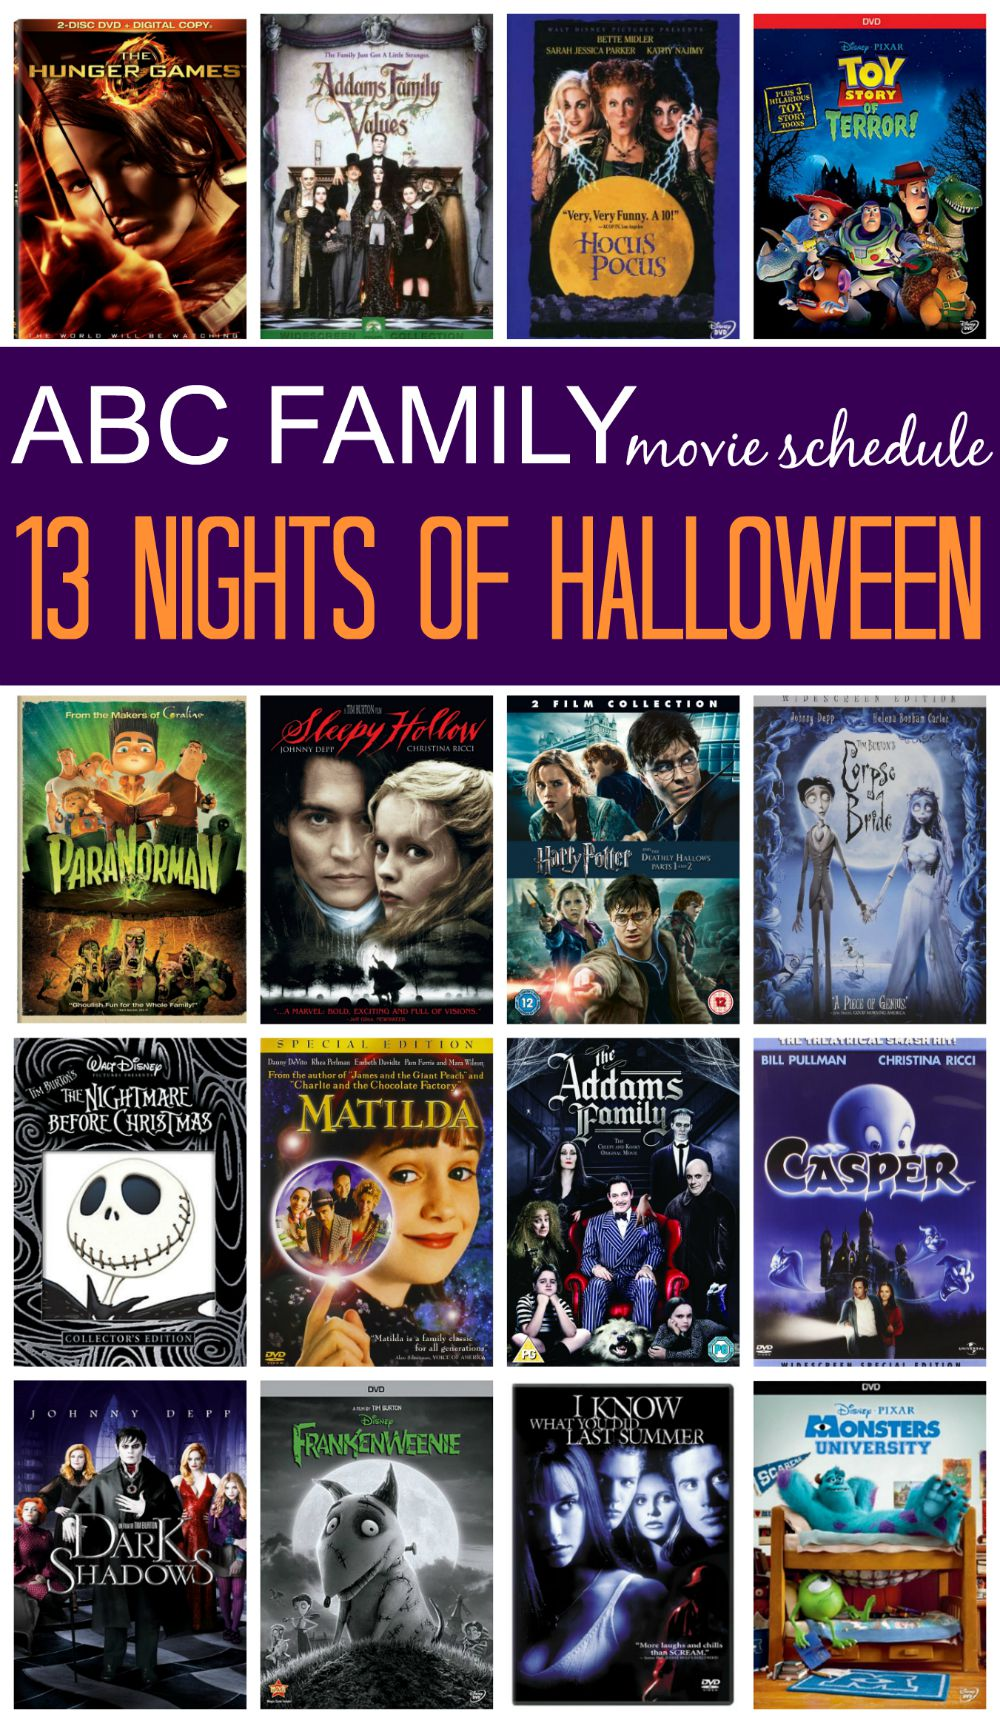 abc family 13 nights of halloween 2015